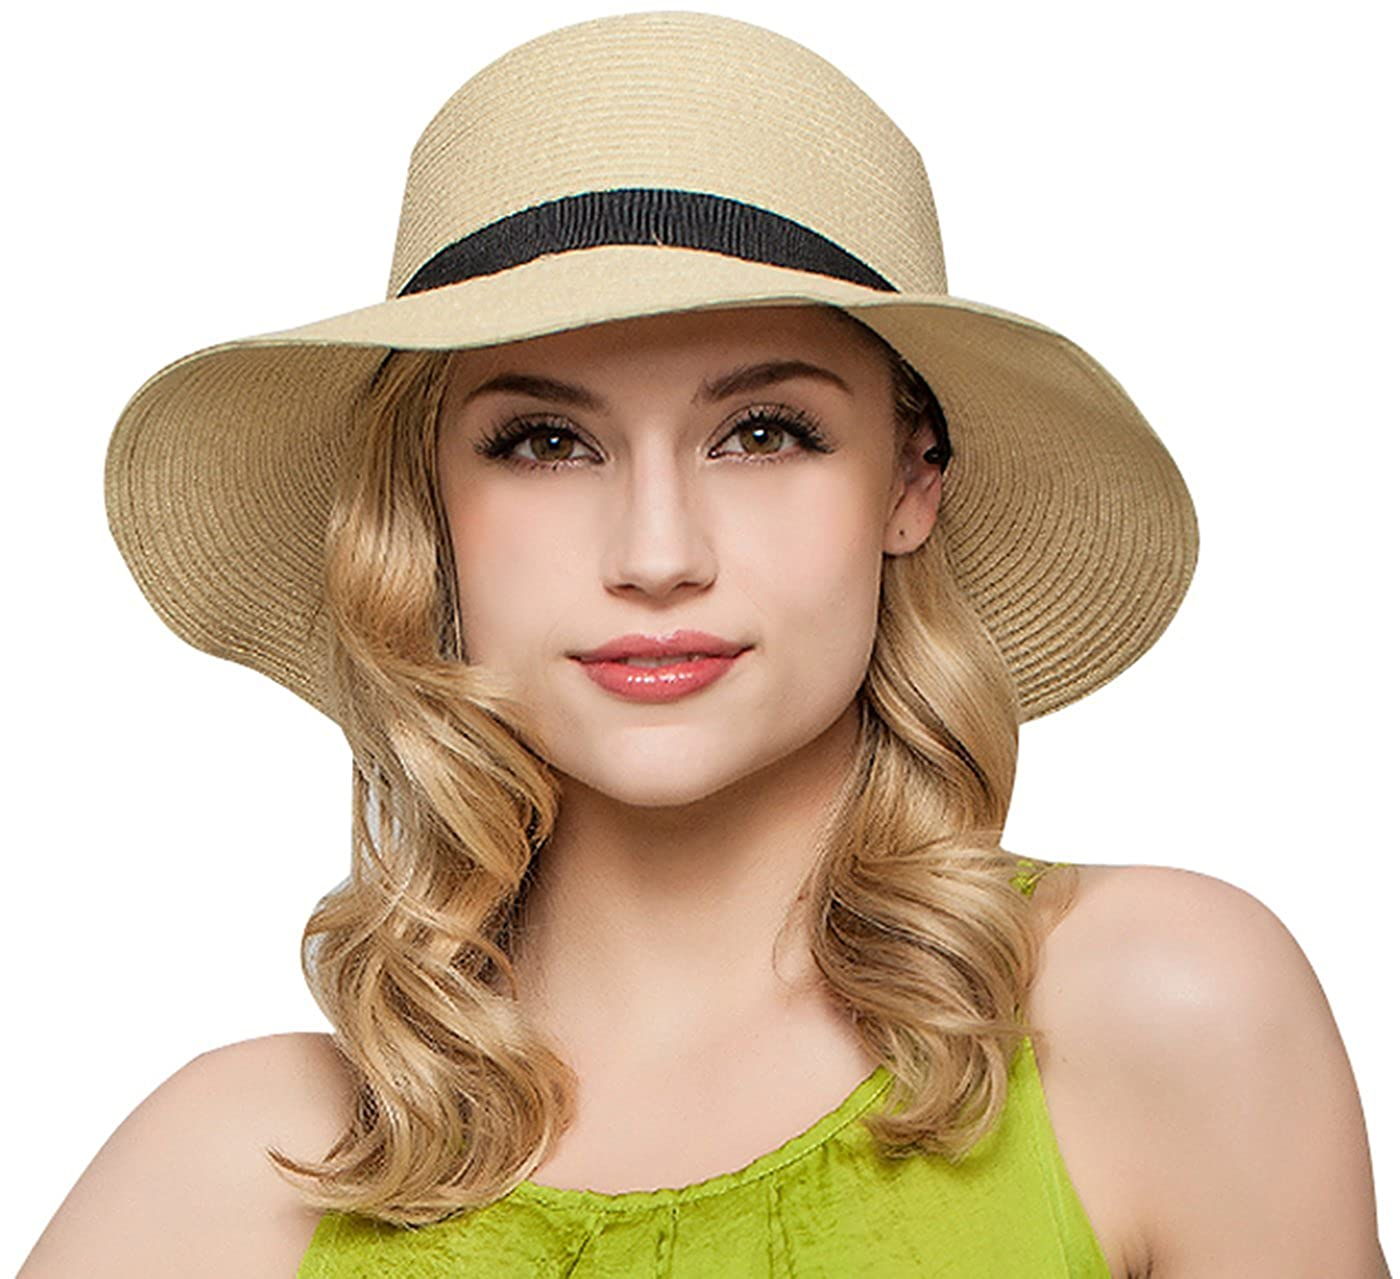 641a919975dca Janrely Women Floppy Sun Beach Straw Hats Wide Brim Packable Summer Cap  (Beige) at Amazon Women s Clothing store